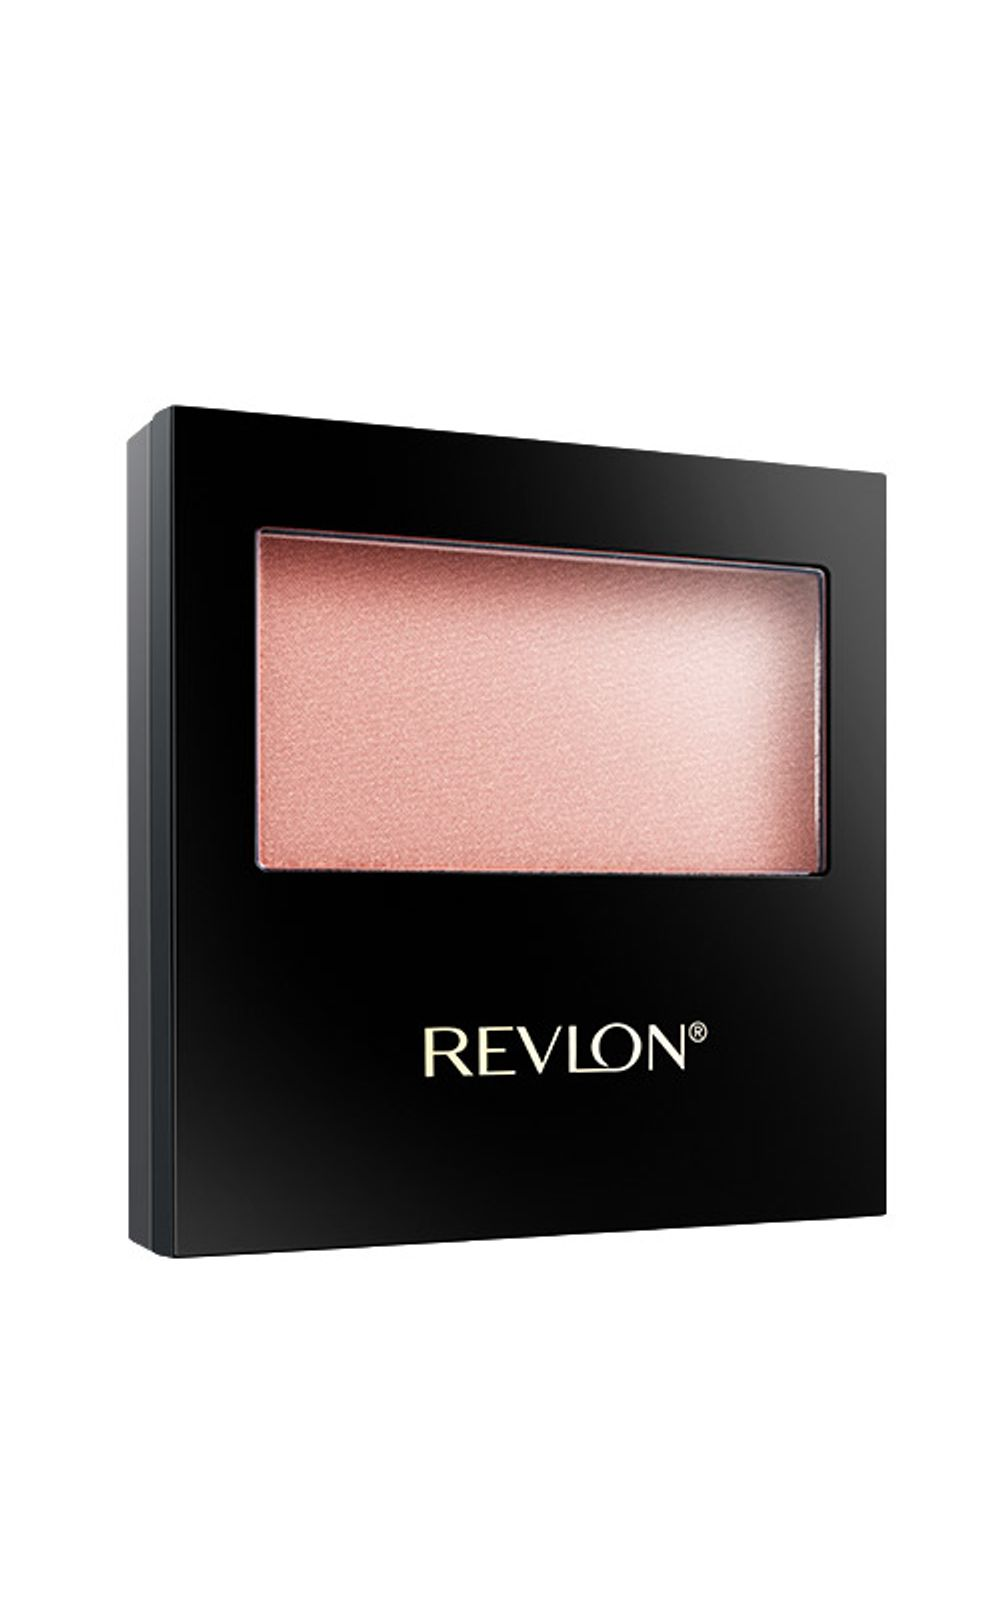 Powder Blush Revlon - Blush - 001 - Oh Baby